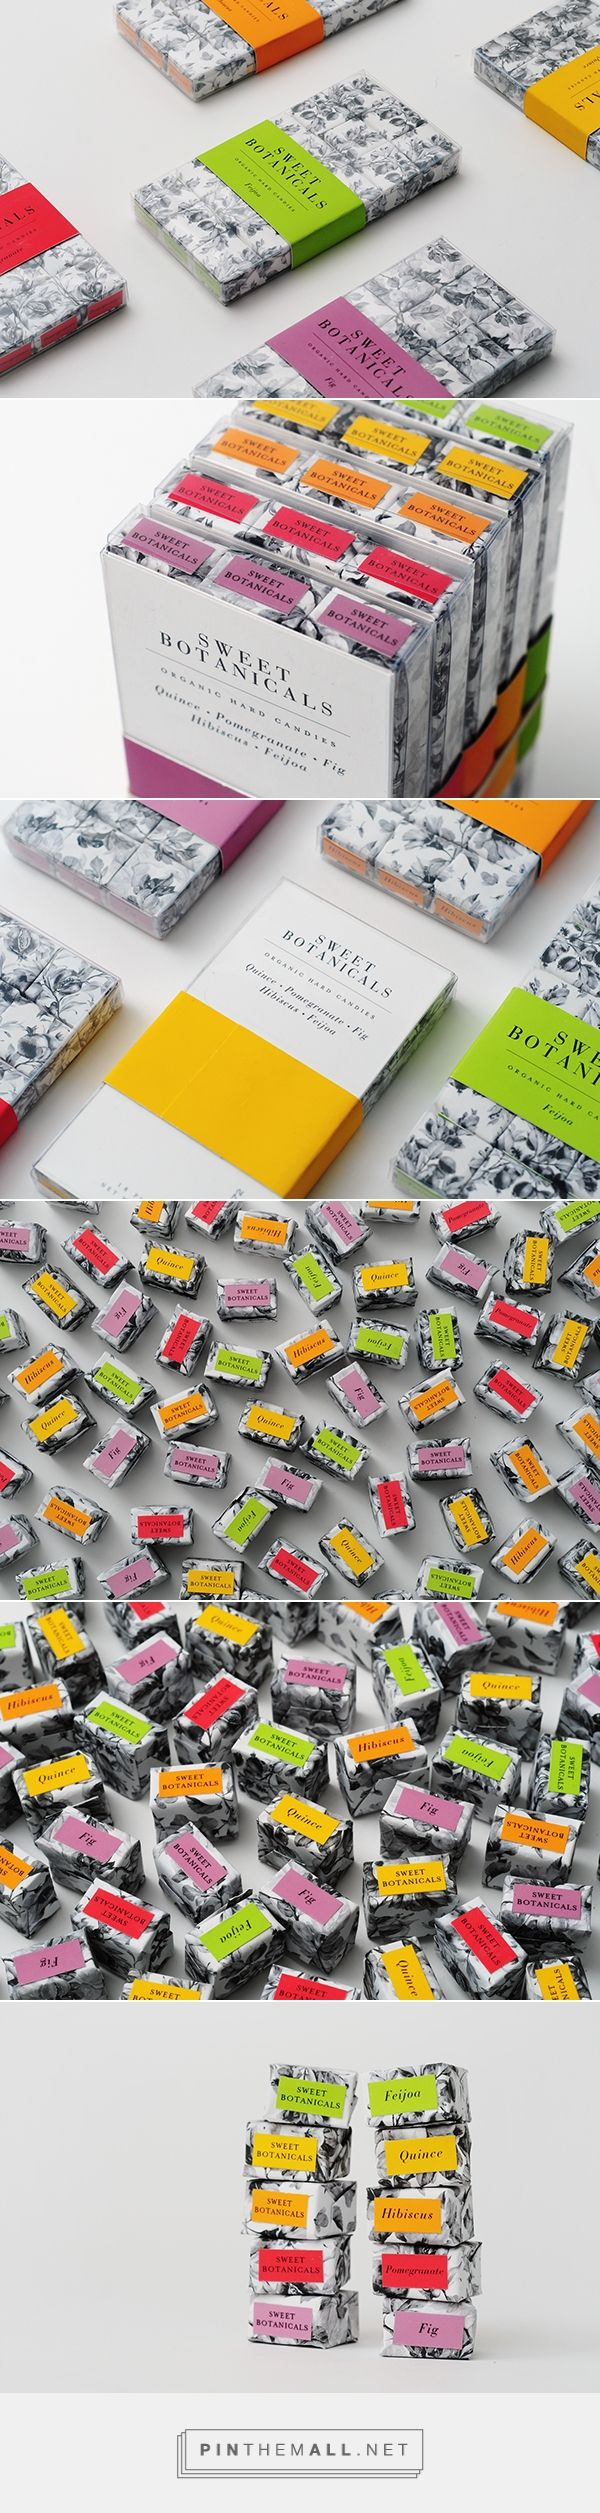 Sweet Botanical Brand Candy Packaging by Miguel Yatco | Fivestar Branding Agency – Design and Branding Agency & Curated Inspiration Gallery